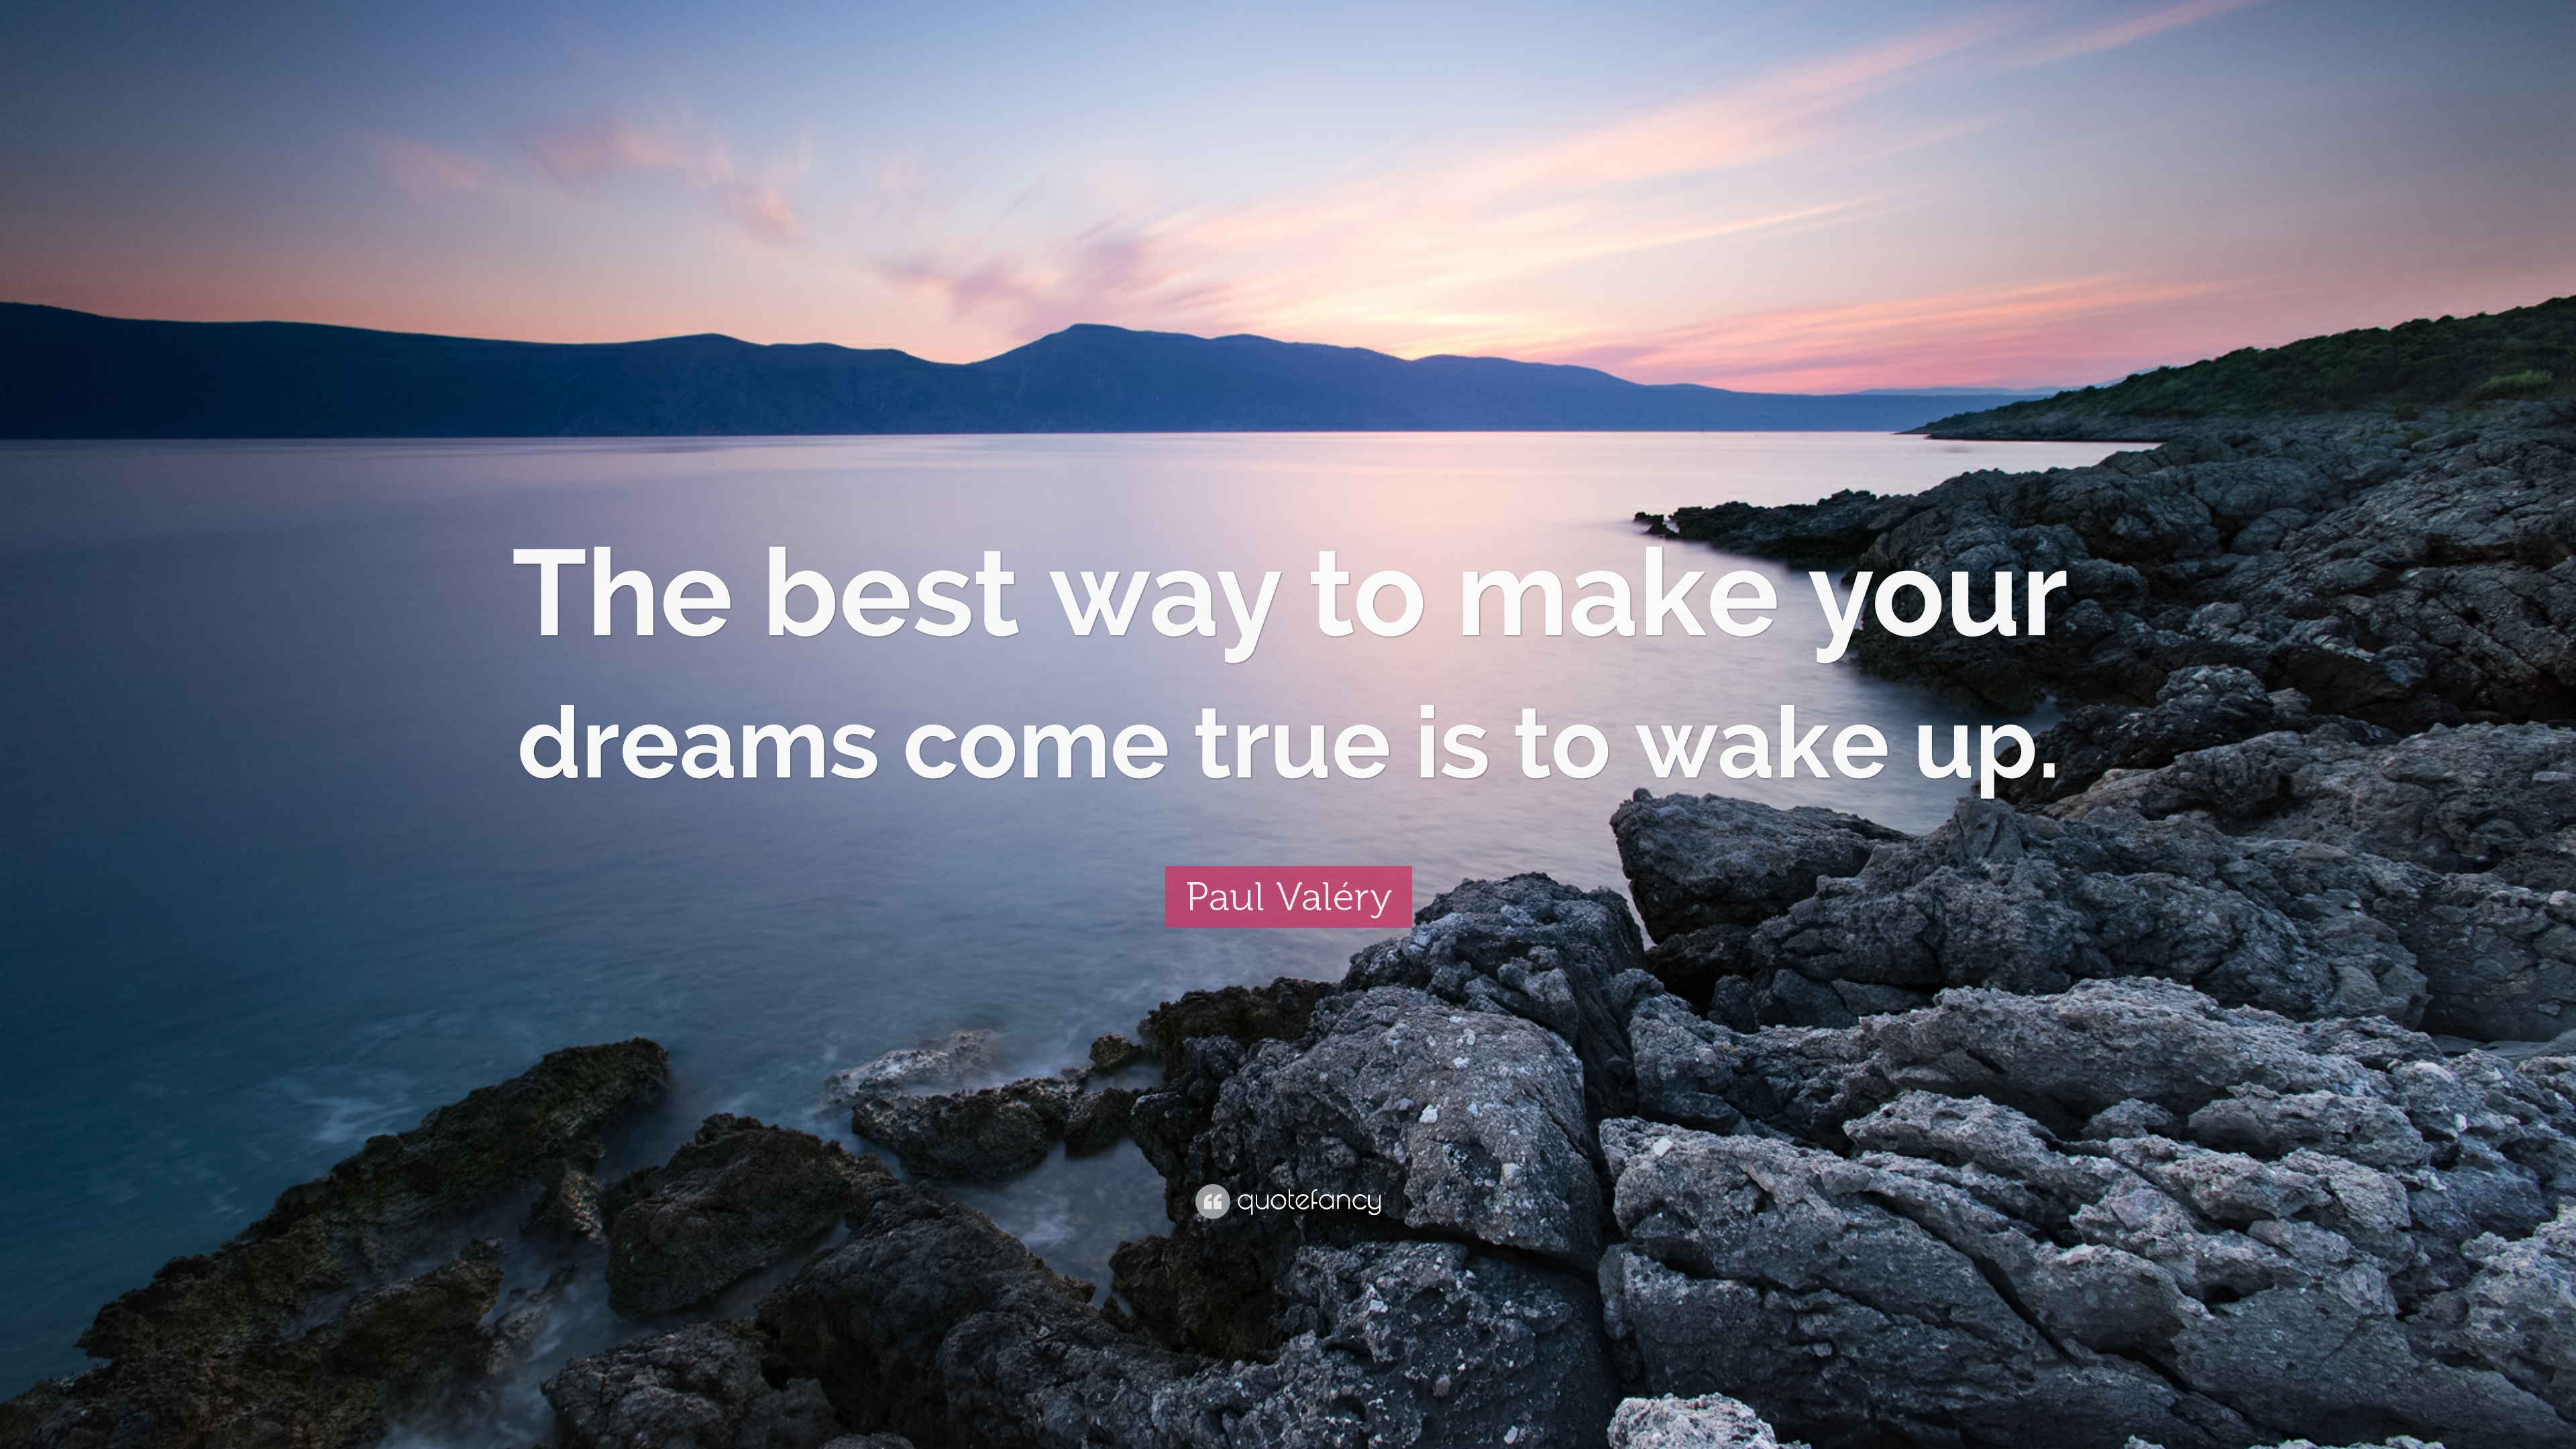 Paul valry quote the best way to make your dreams come true is paul valry quote the best way to make your dreams come true is to altavistaventures Image collections